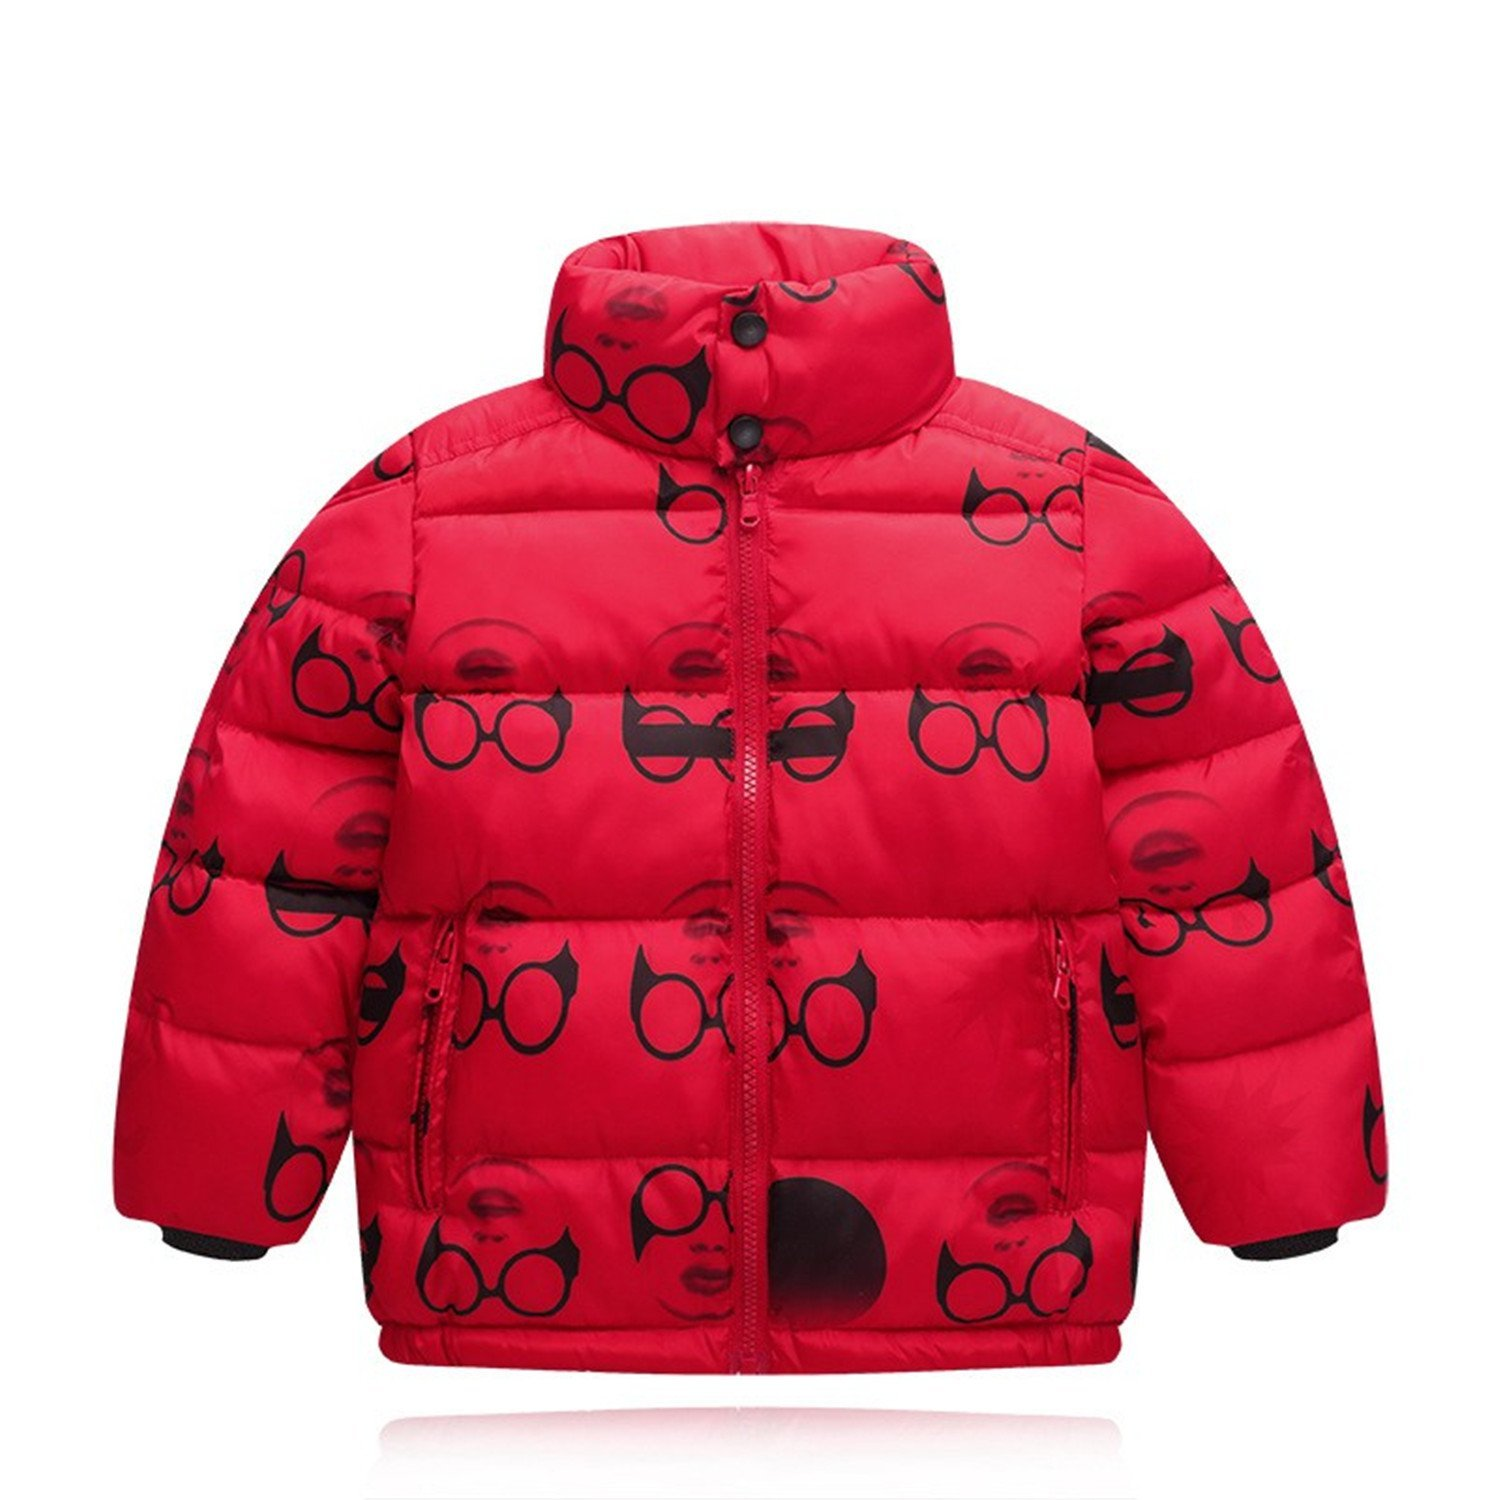 Baqijian Girls Parka Winter Coat Fur Children Coat Kids Cotton Teenage Jacket Boys Parka Kids Snowsuit Clothes